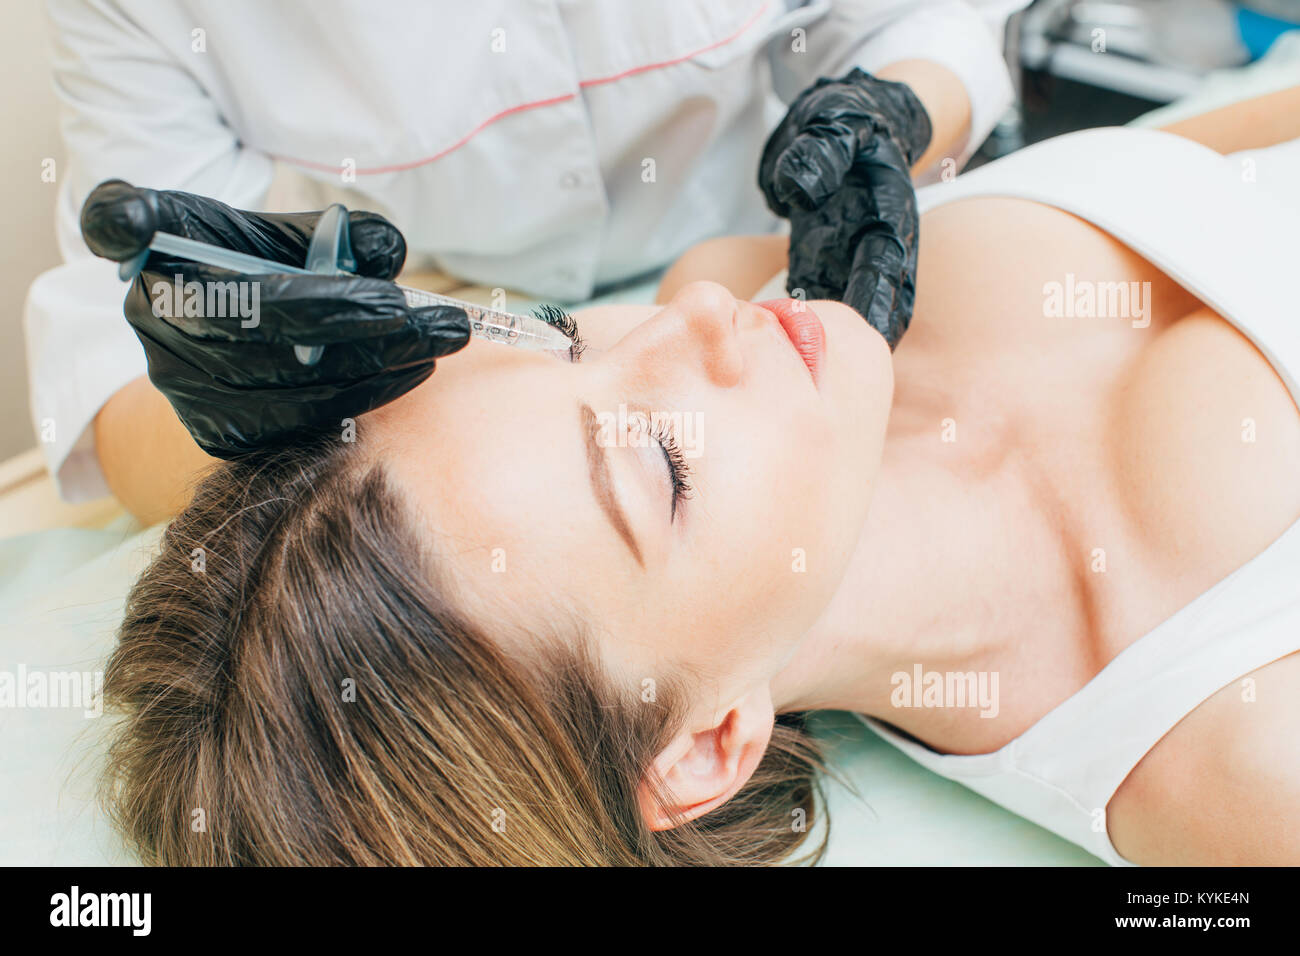 Plastic Surgery. Closeup Of Beautician Hands Holding Syringe Near Female Facial Skin Doing Injections.  Cosmetology. - Stock Image